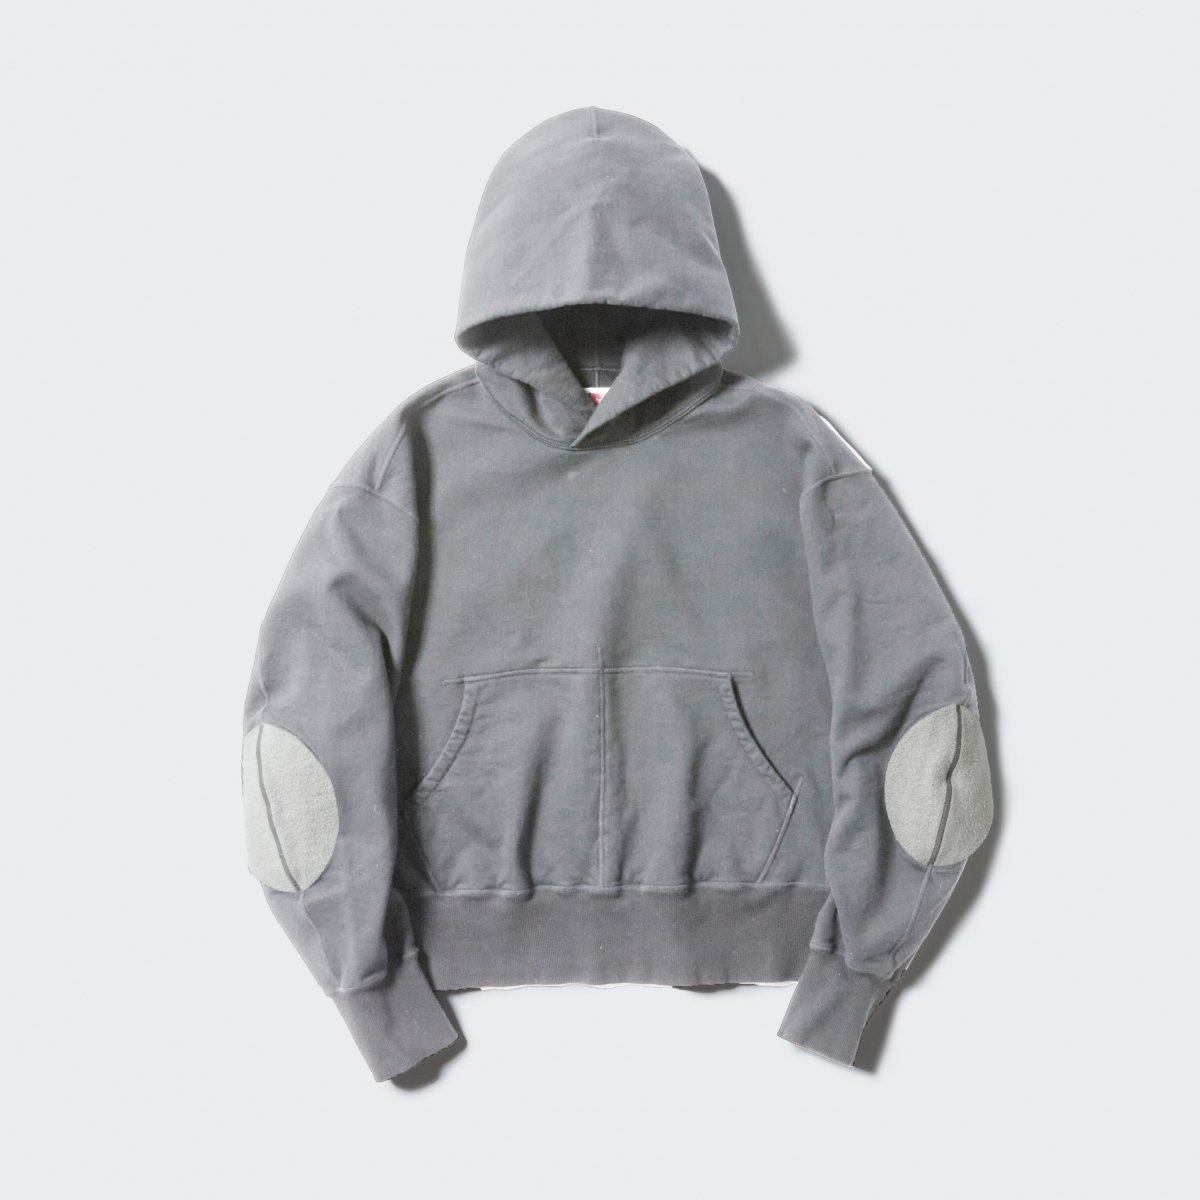 <img class='new_mark_img1' src='https://img.shop-pro.jp/img/new/icons5.gif' style='border:none;display:inline;margin:0px;padding:0px;width:auto;' />【2021AW】MILSPEC PARKA | GREY